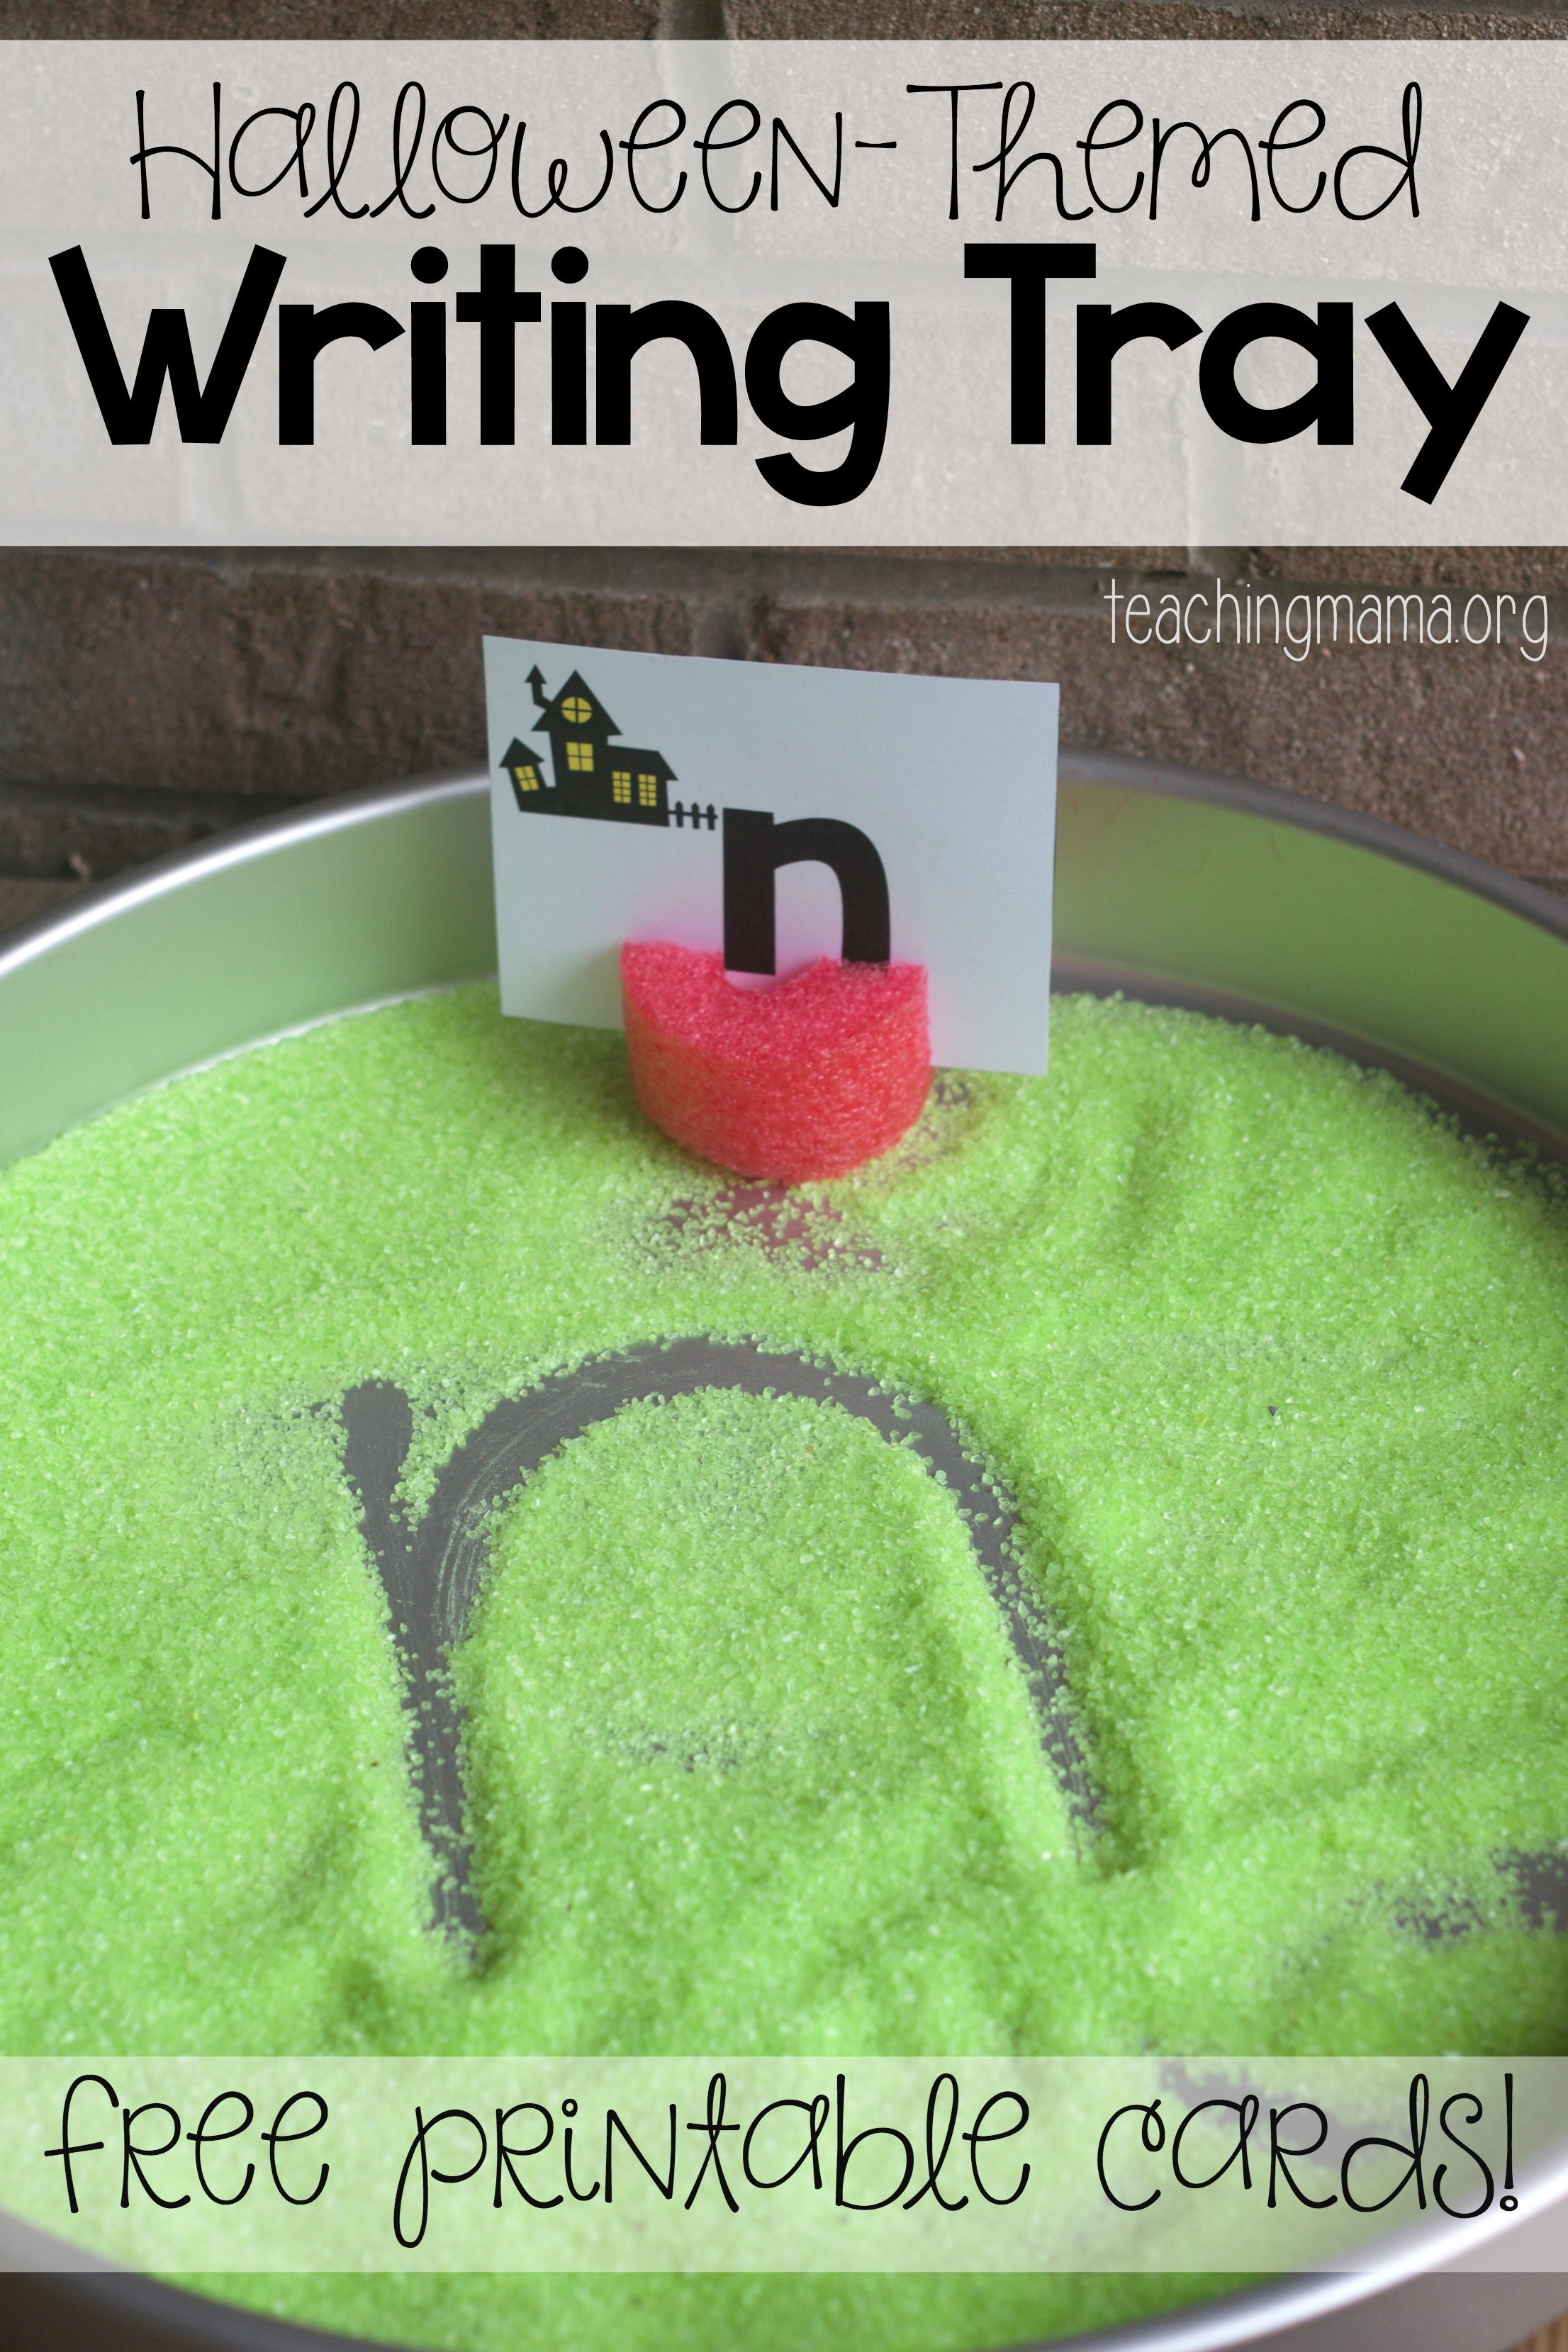 halloween-themed-writing-tray-pin